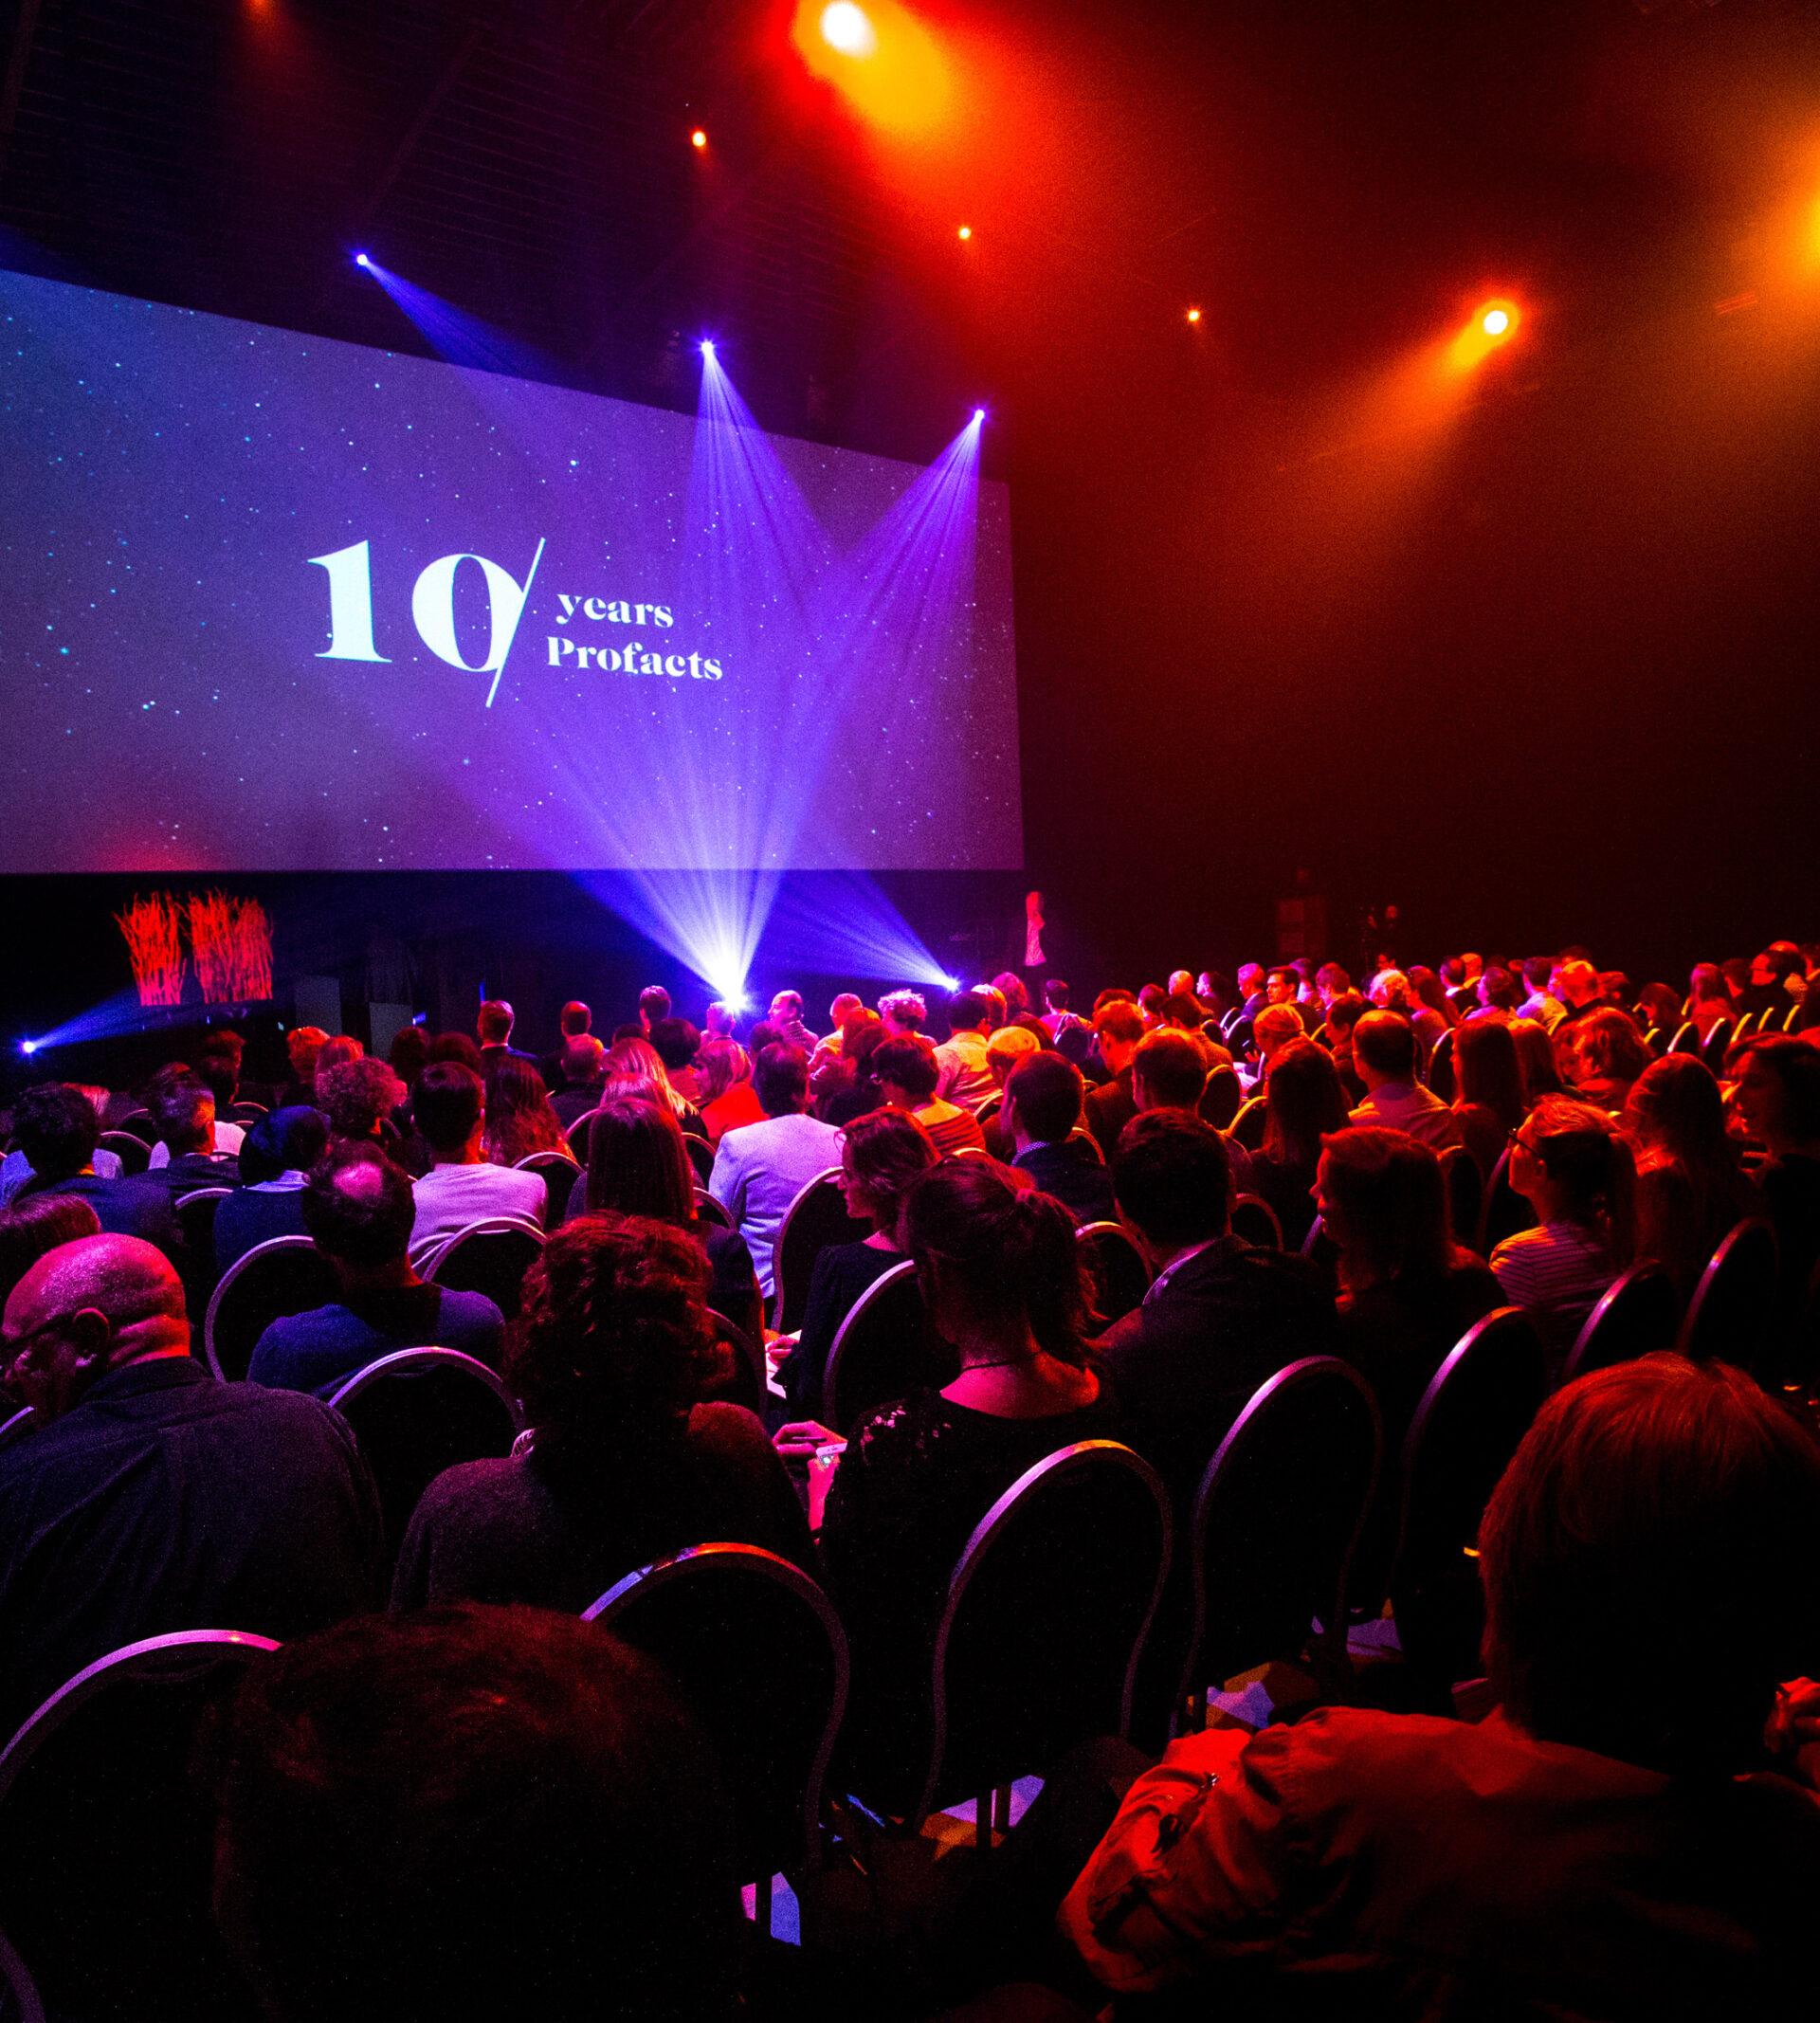 10 years Profacts selection 12